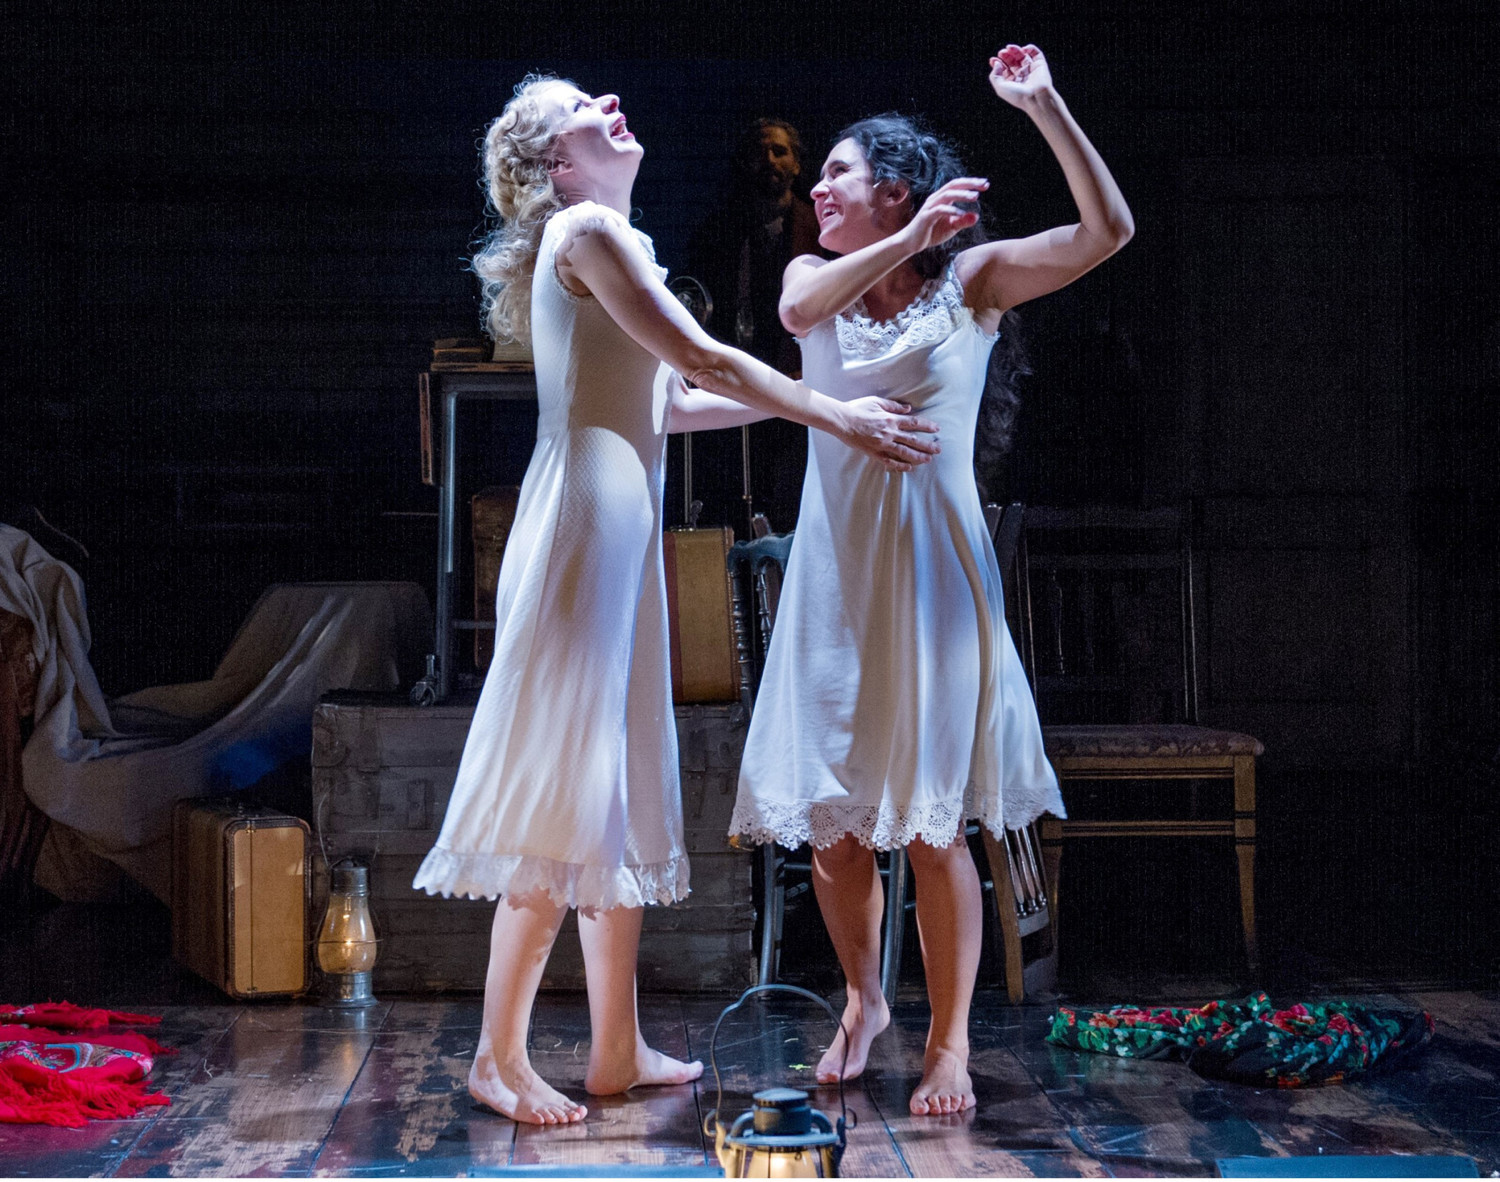 BWW Review: Dazzling and Uplifting INDECENT at Center Stage